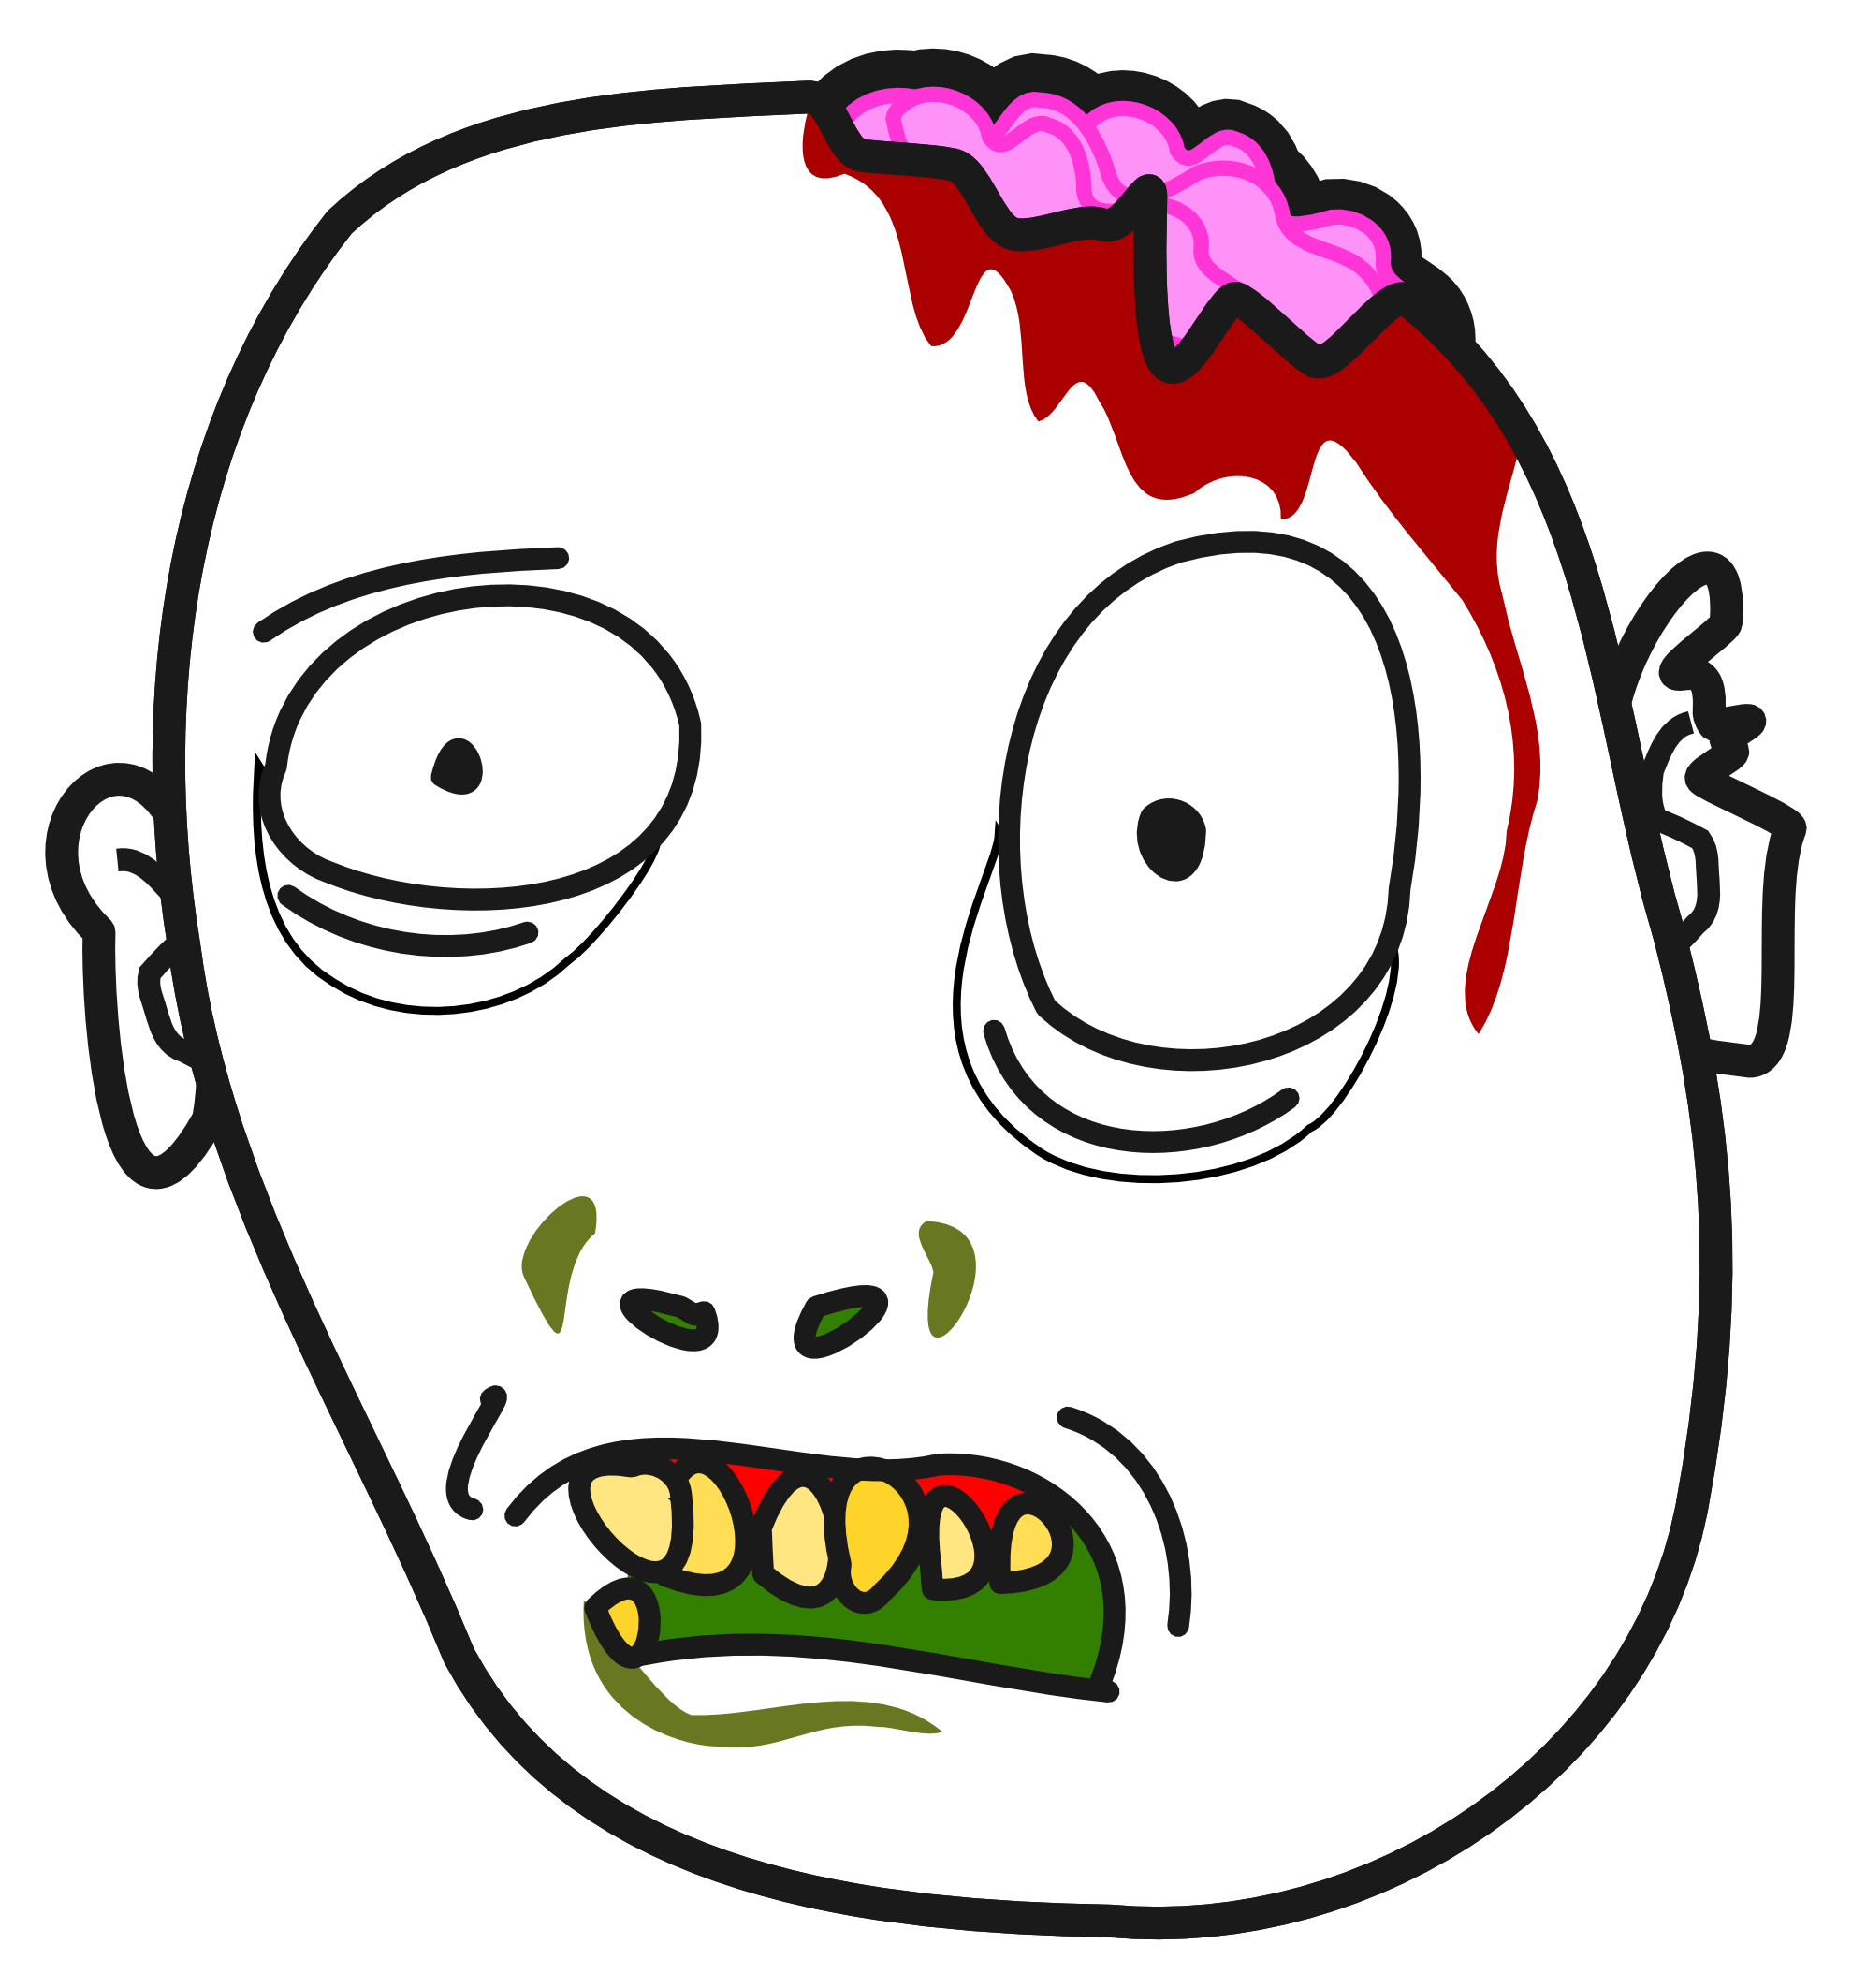 Panda images zombieclipart. Zombie clipart royalty free